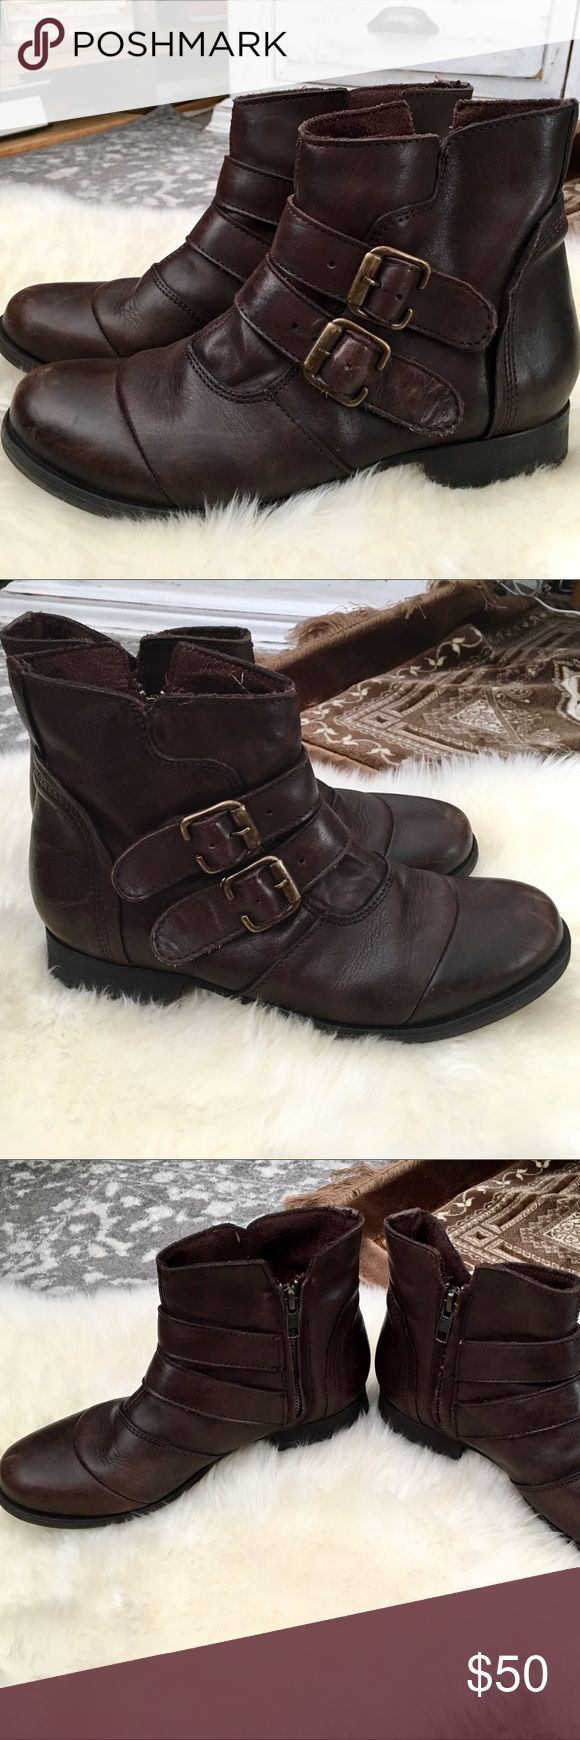 Gabriella Rocha Roise Bootie NWOT These are a great pair of genuine leather booties that have never been worn! Size 7 in chocolate brown with brass buckle accents. Gabriella Rocha Shoes Ankle Boots & Booties